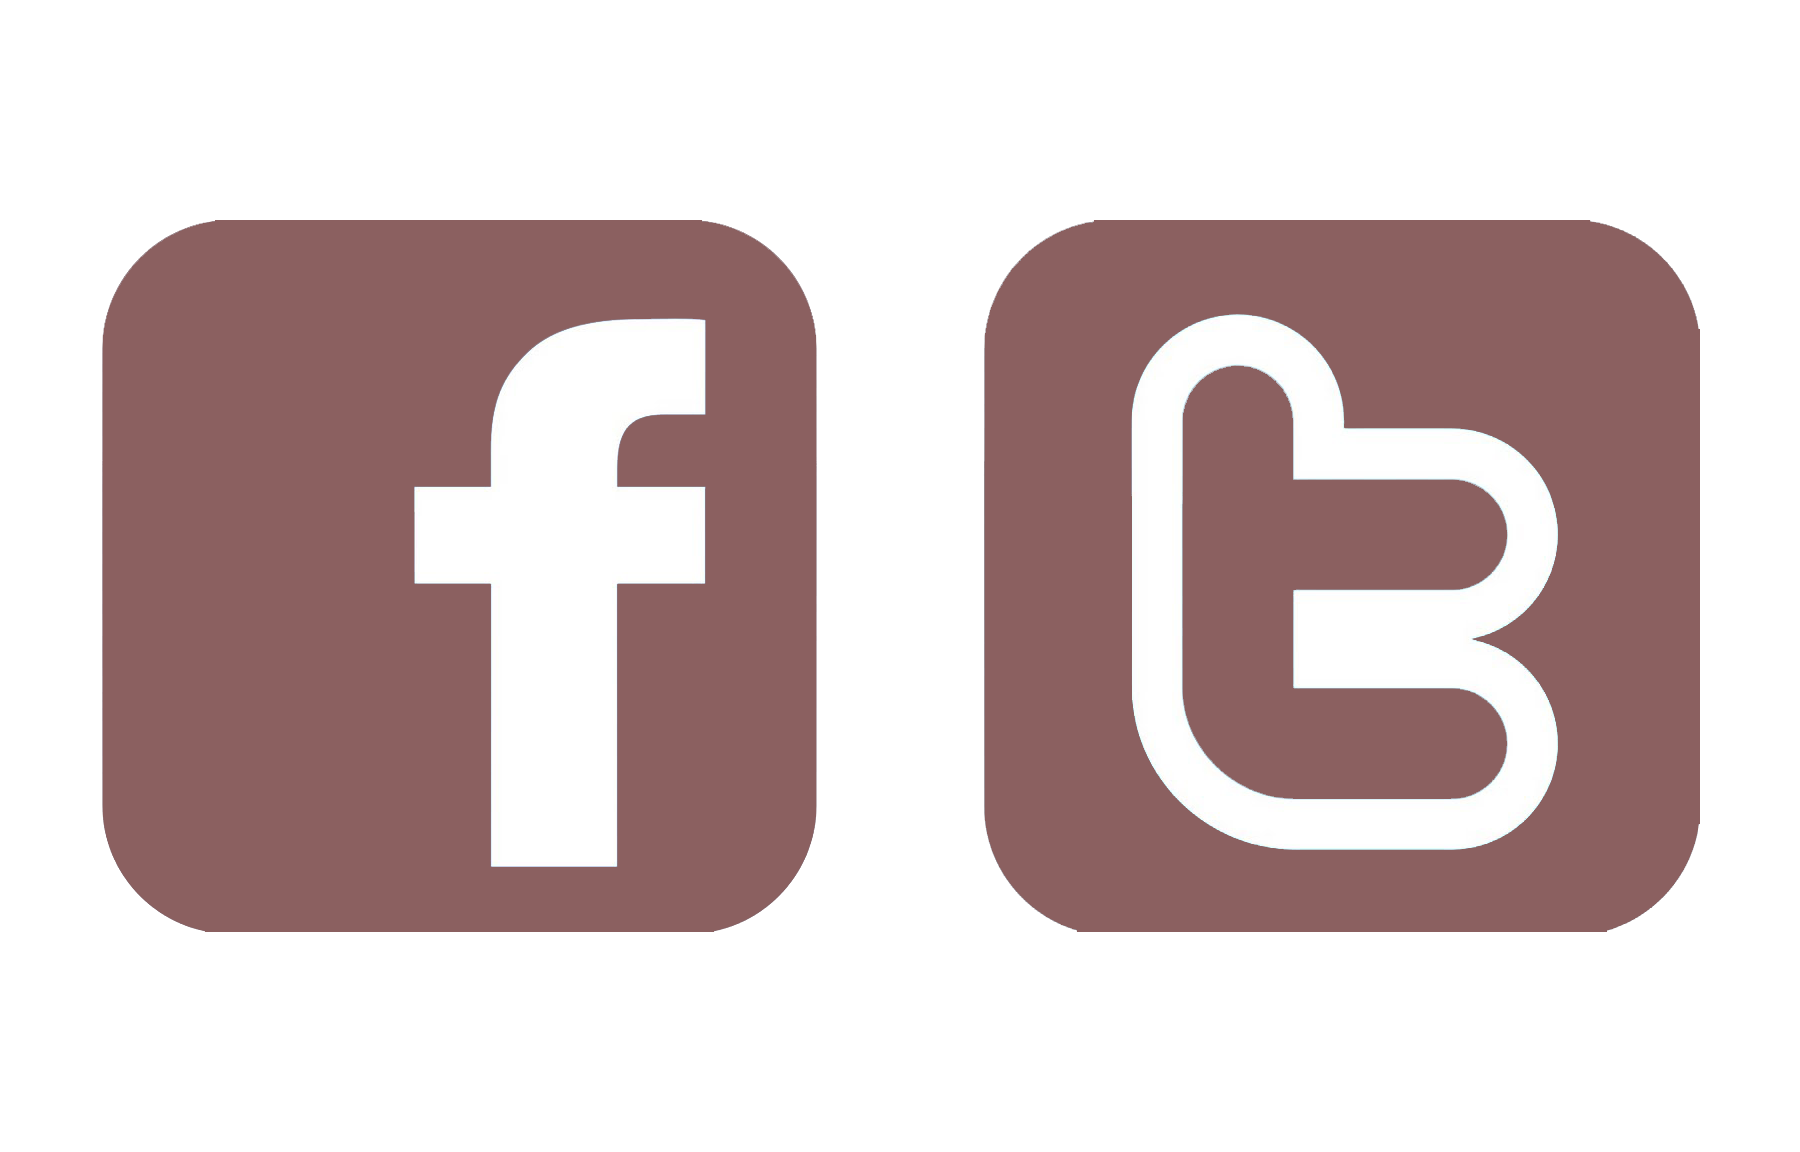 Facebook twitter icon png. Logos